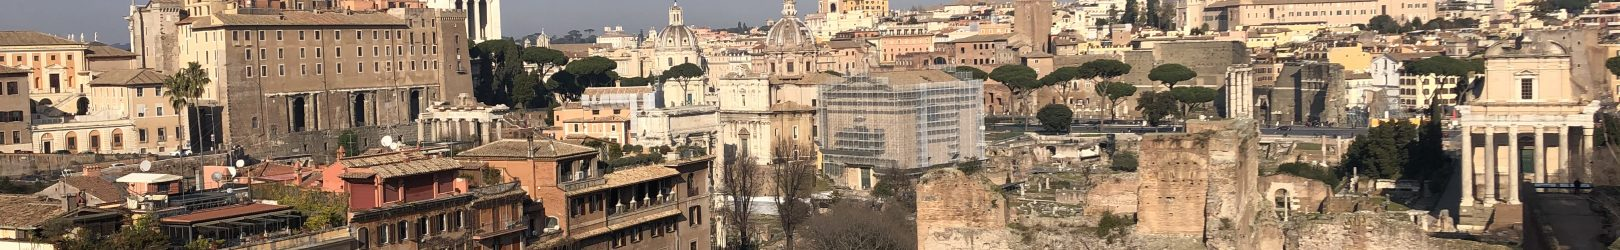 Summary of Multimedia Heritage Experiences Visited in Rome – 11th-13th January 2020